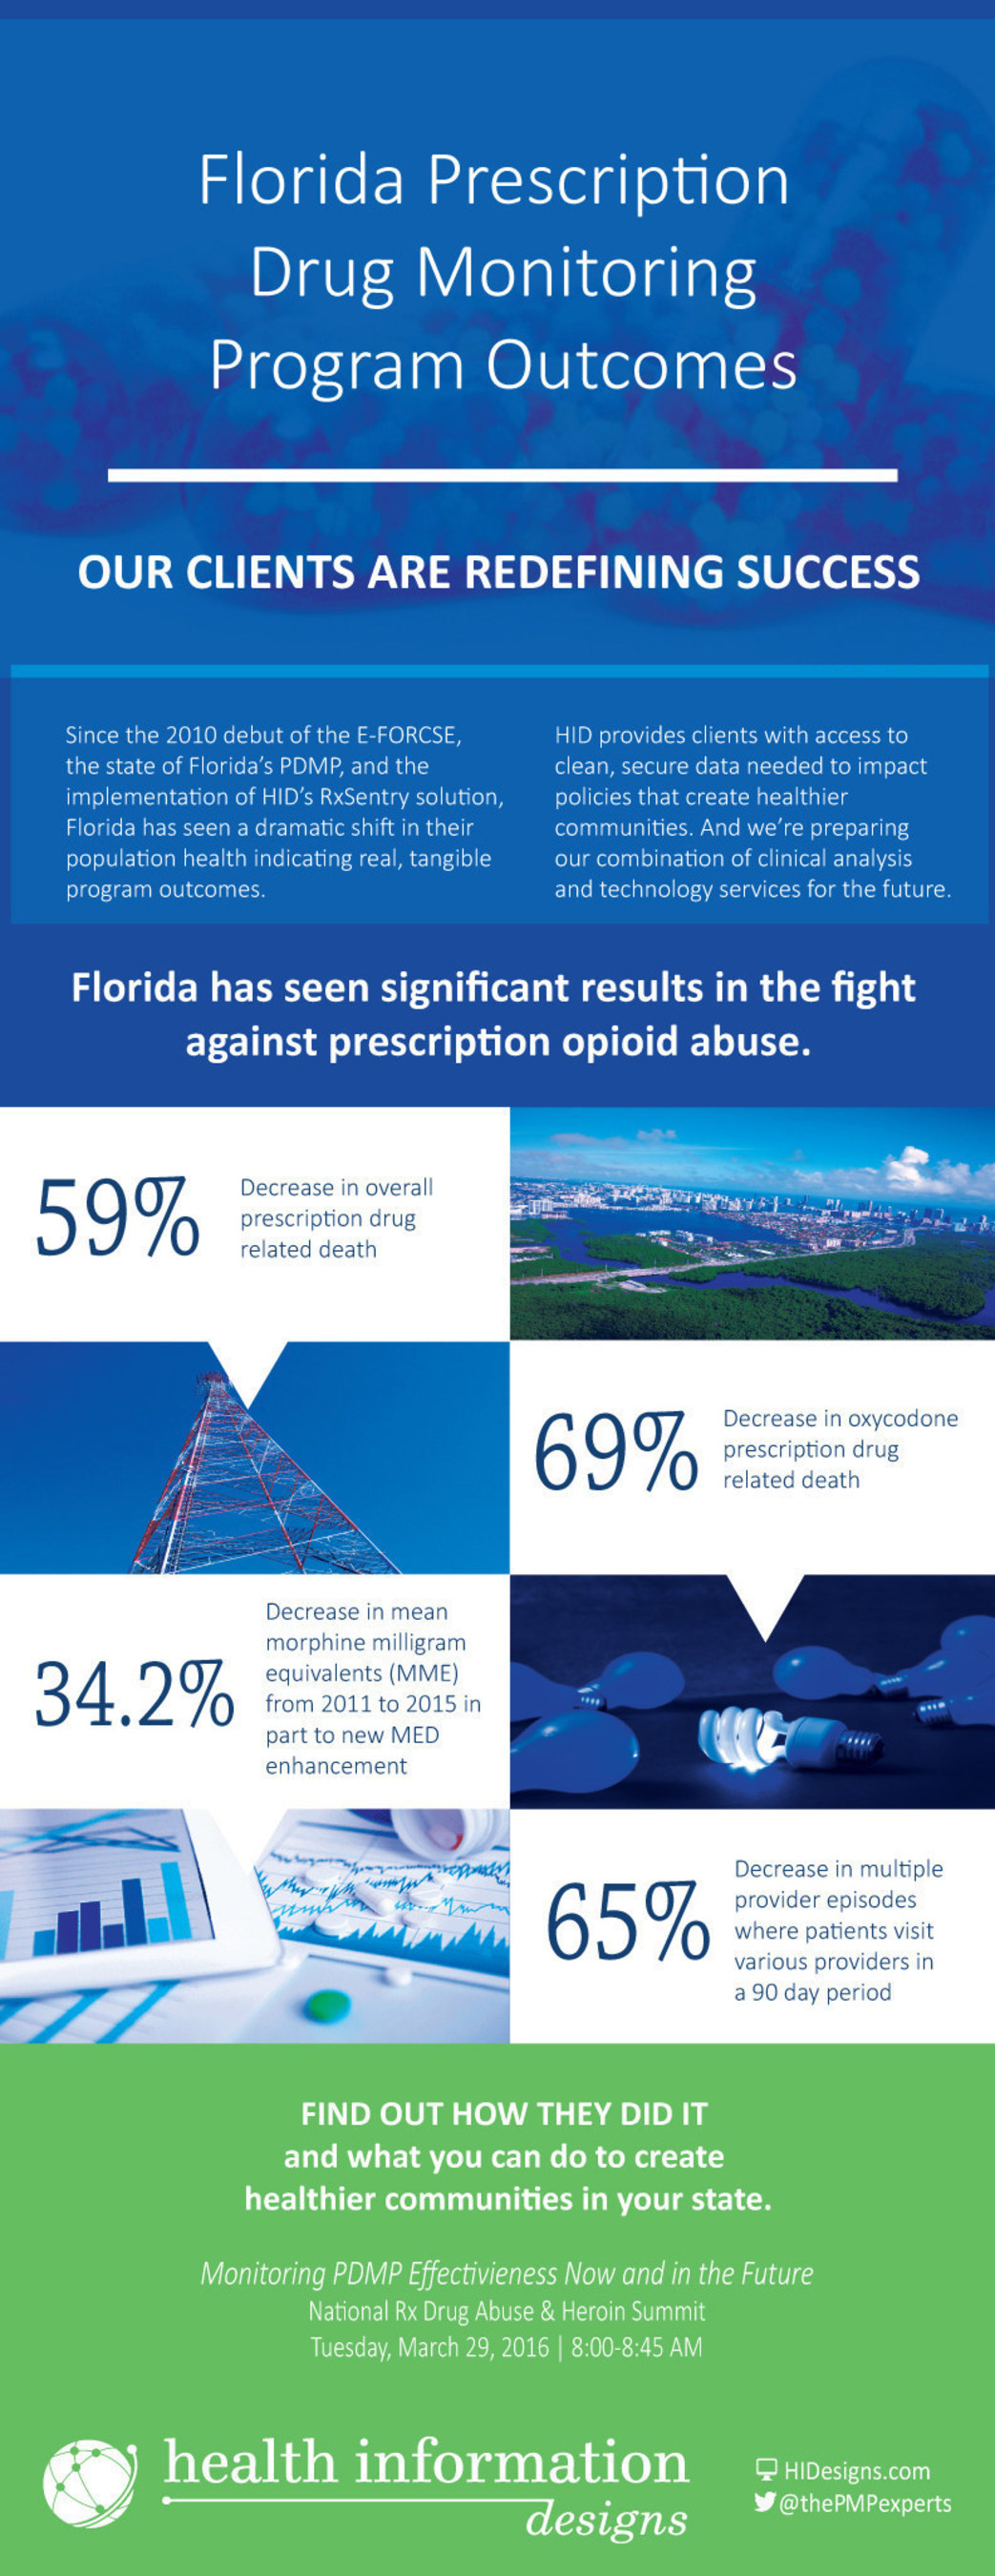 Florida's Department of Health is experiencing amazing outcomes with the help of Health Information ...